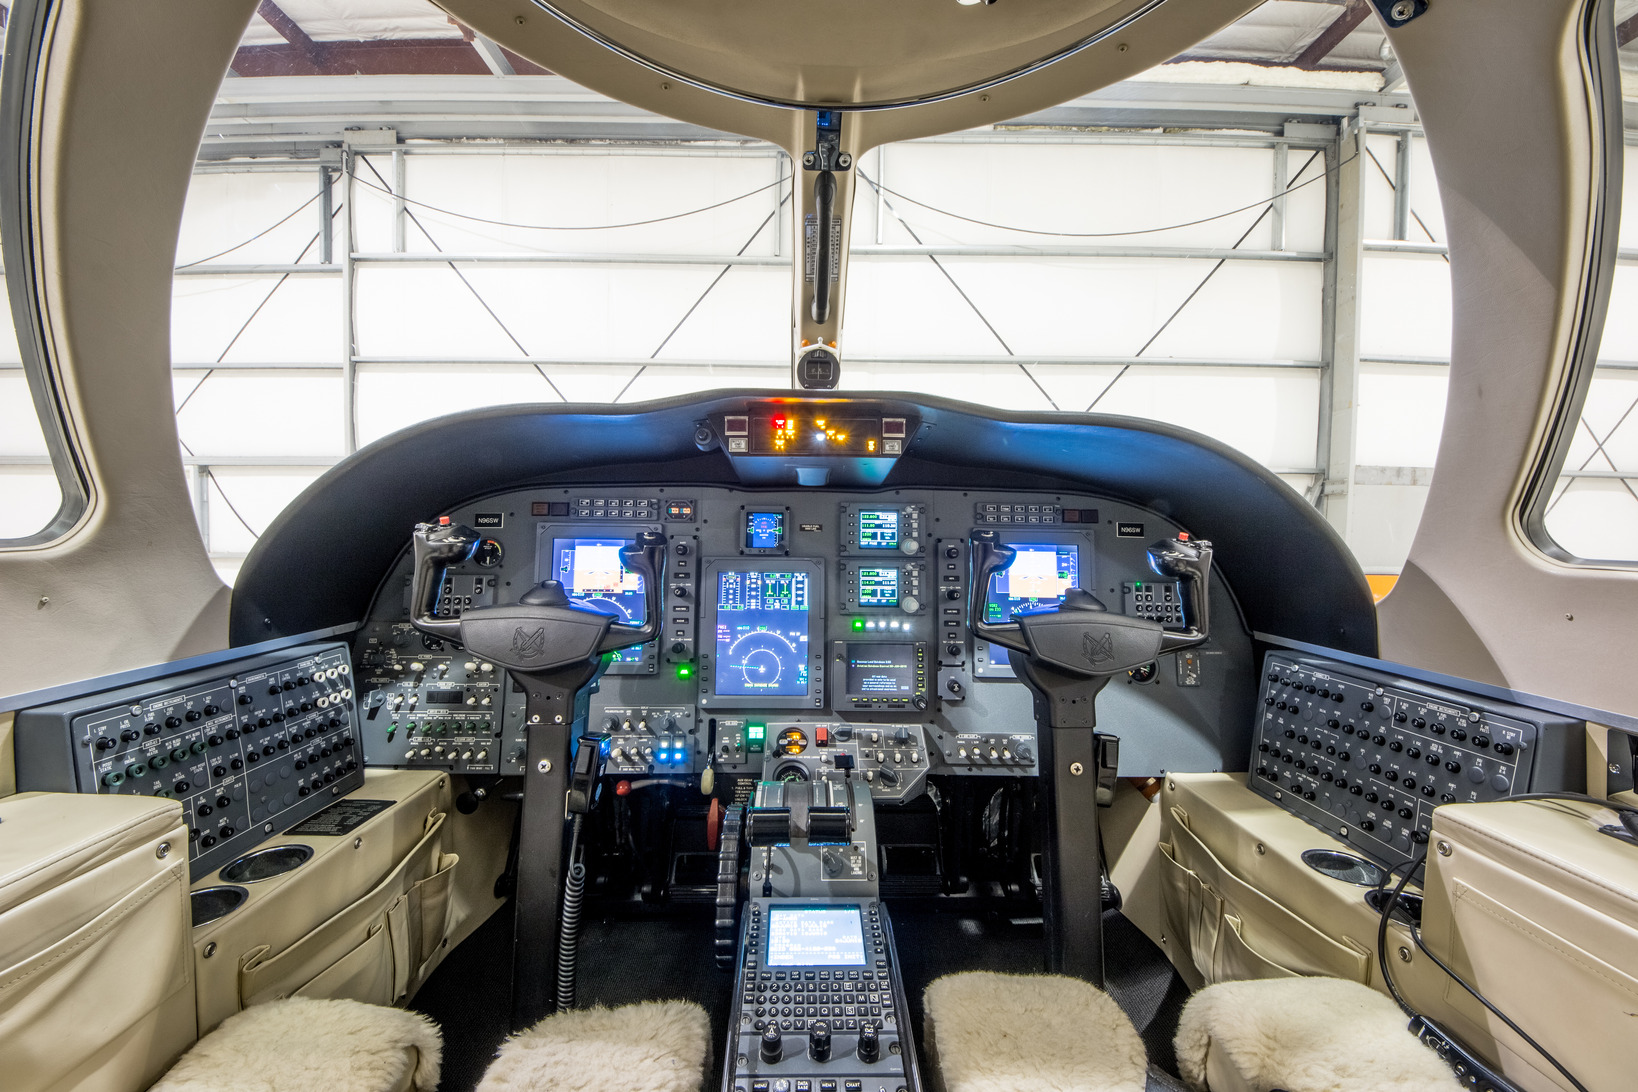 2008 Cessna Citation CJ2+ - Africair, Inc